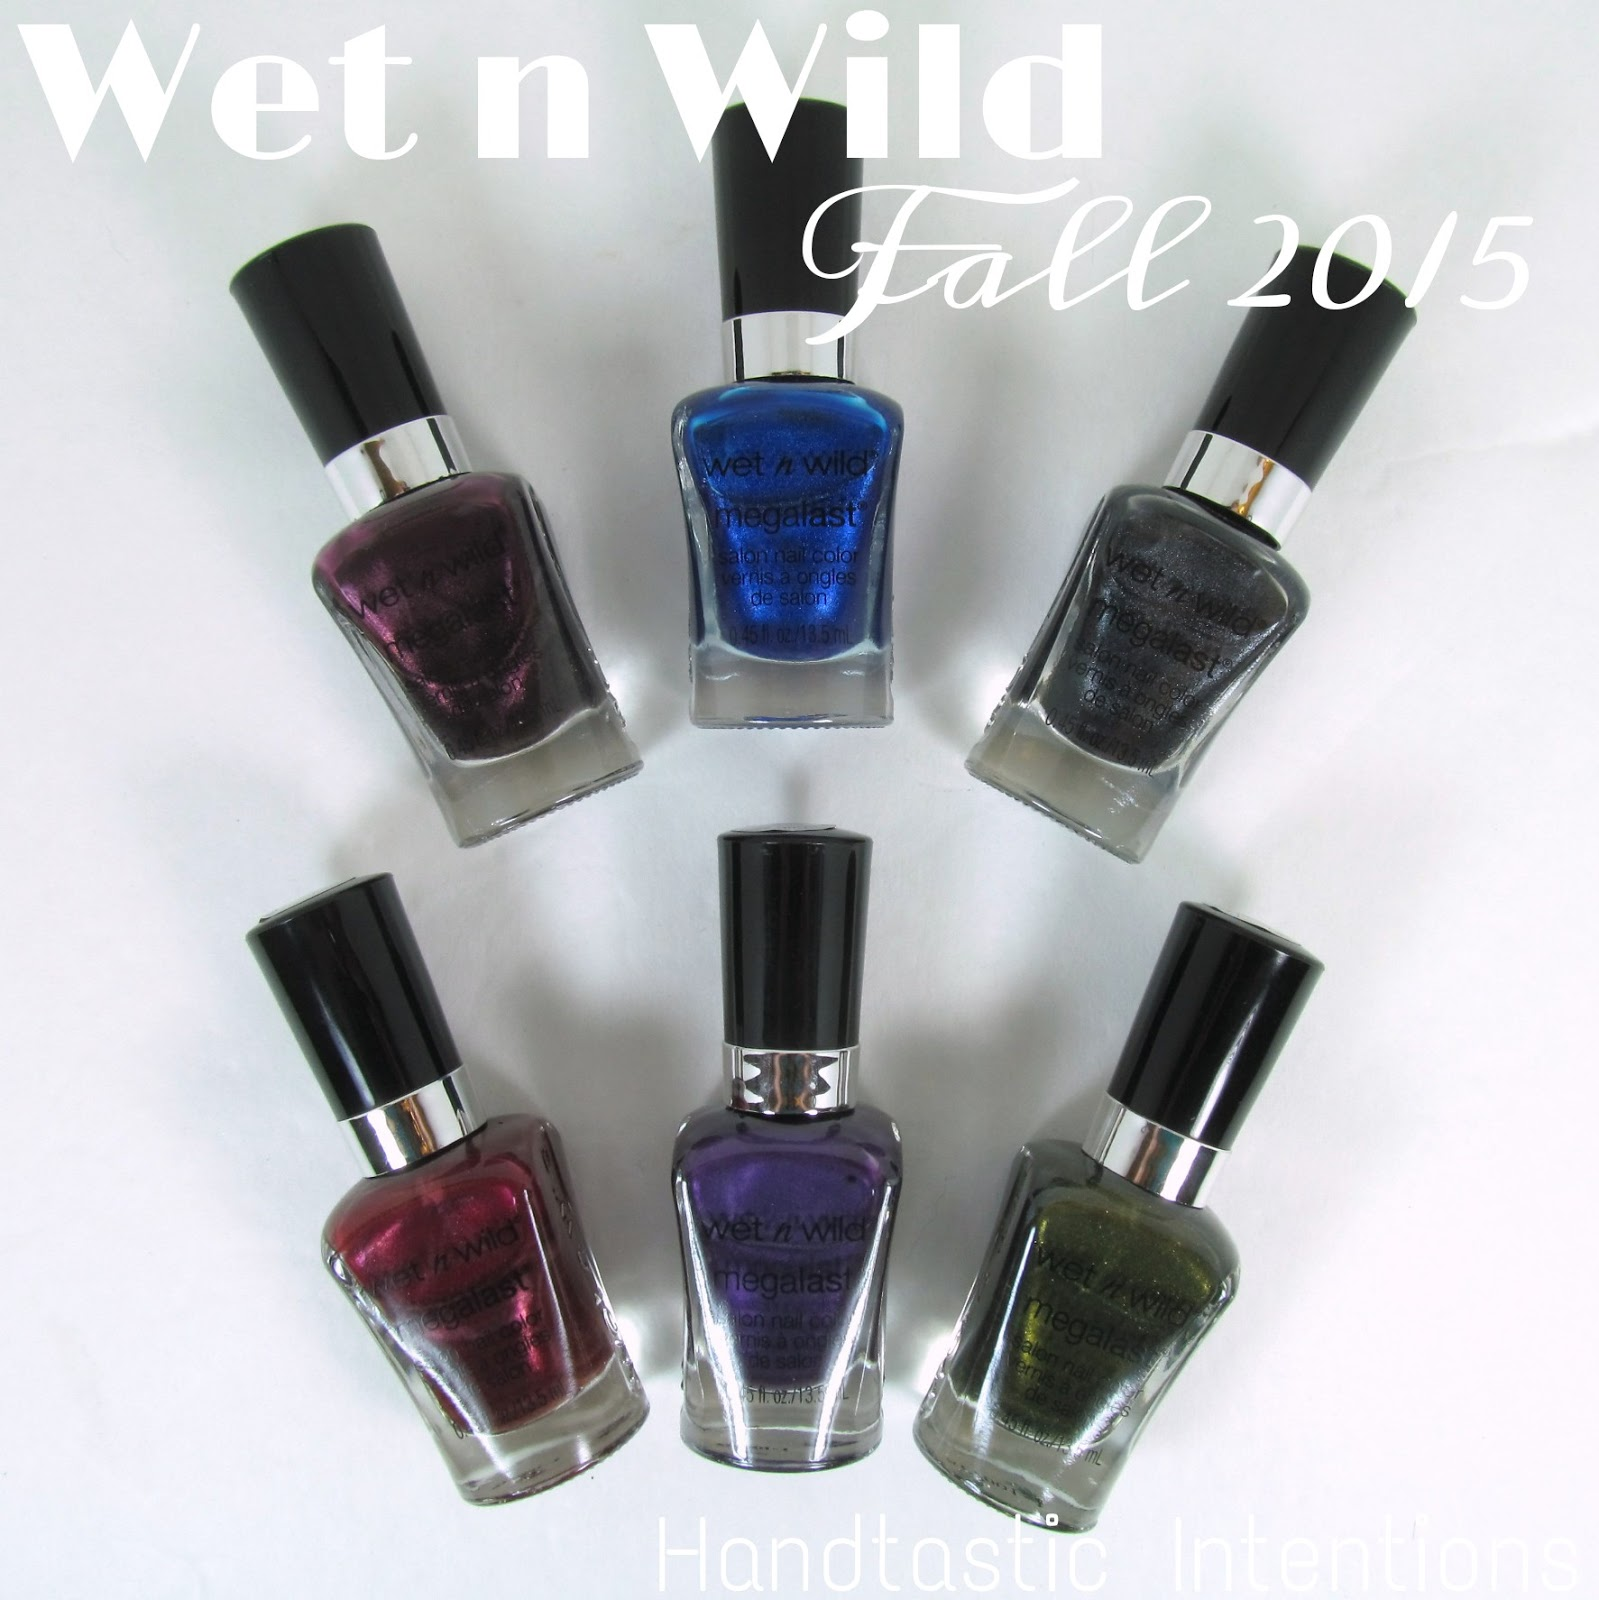 Handtastic Intentions: Wet n Wild Fall 2015 Collection